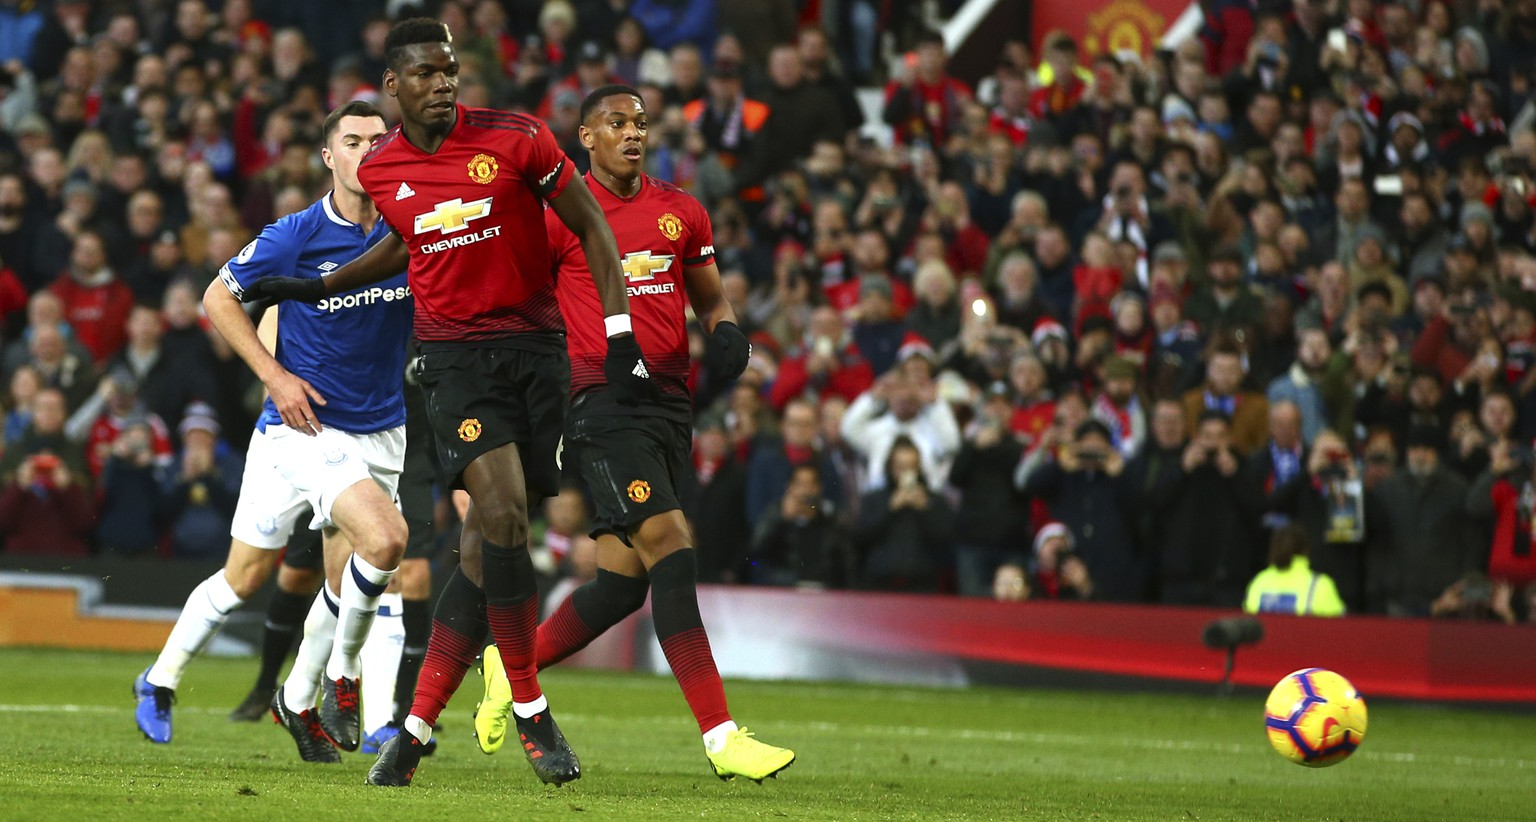 Manchester United's Paul Pogba scores the opening goal during the English Premier League soccer match between Manchester United and Everton FC at Old Trafford in Manchester, England, Sunday Oct. 28, 2018. (AP Photo/Dave Thompson)